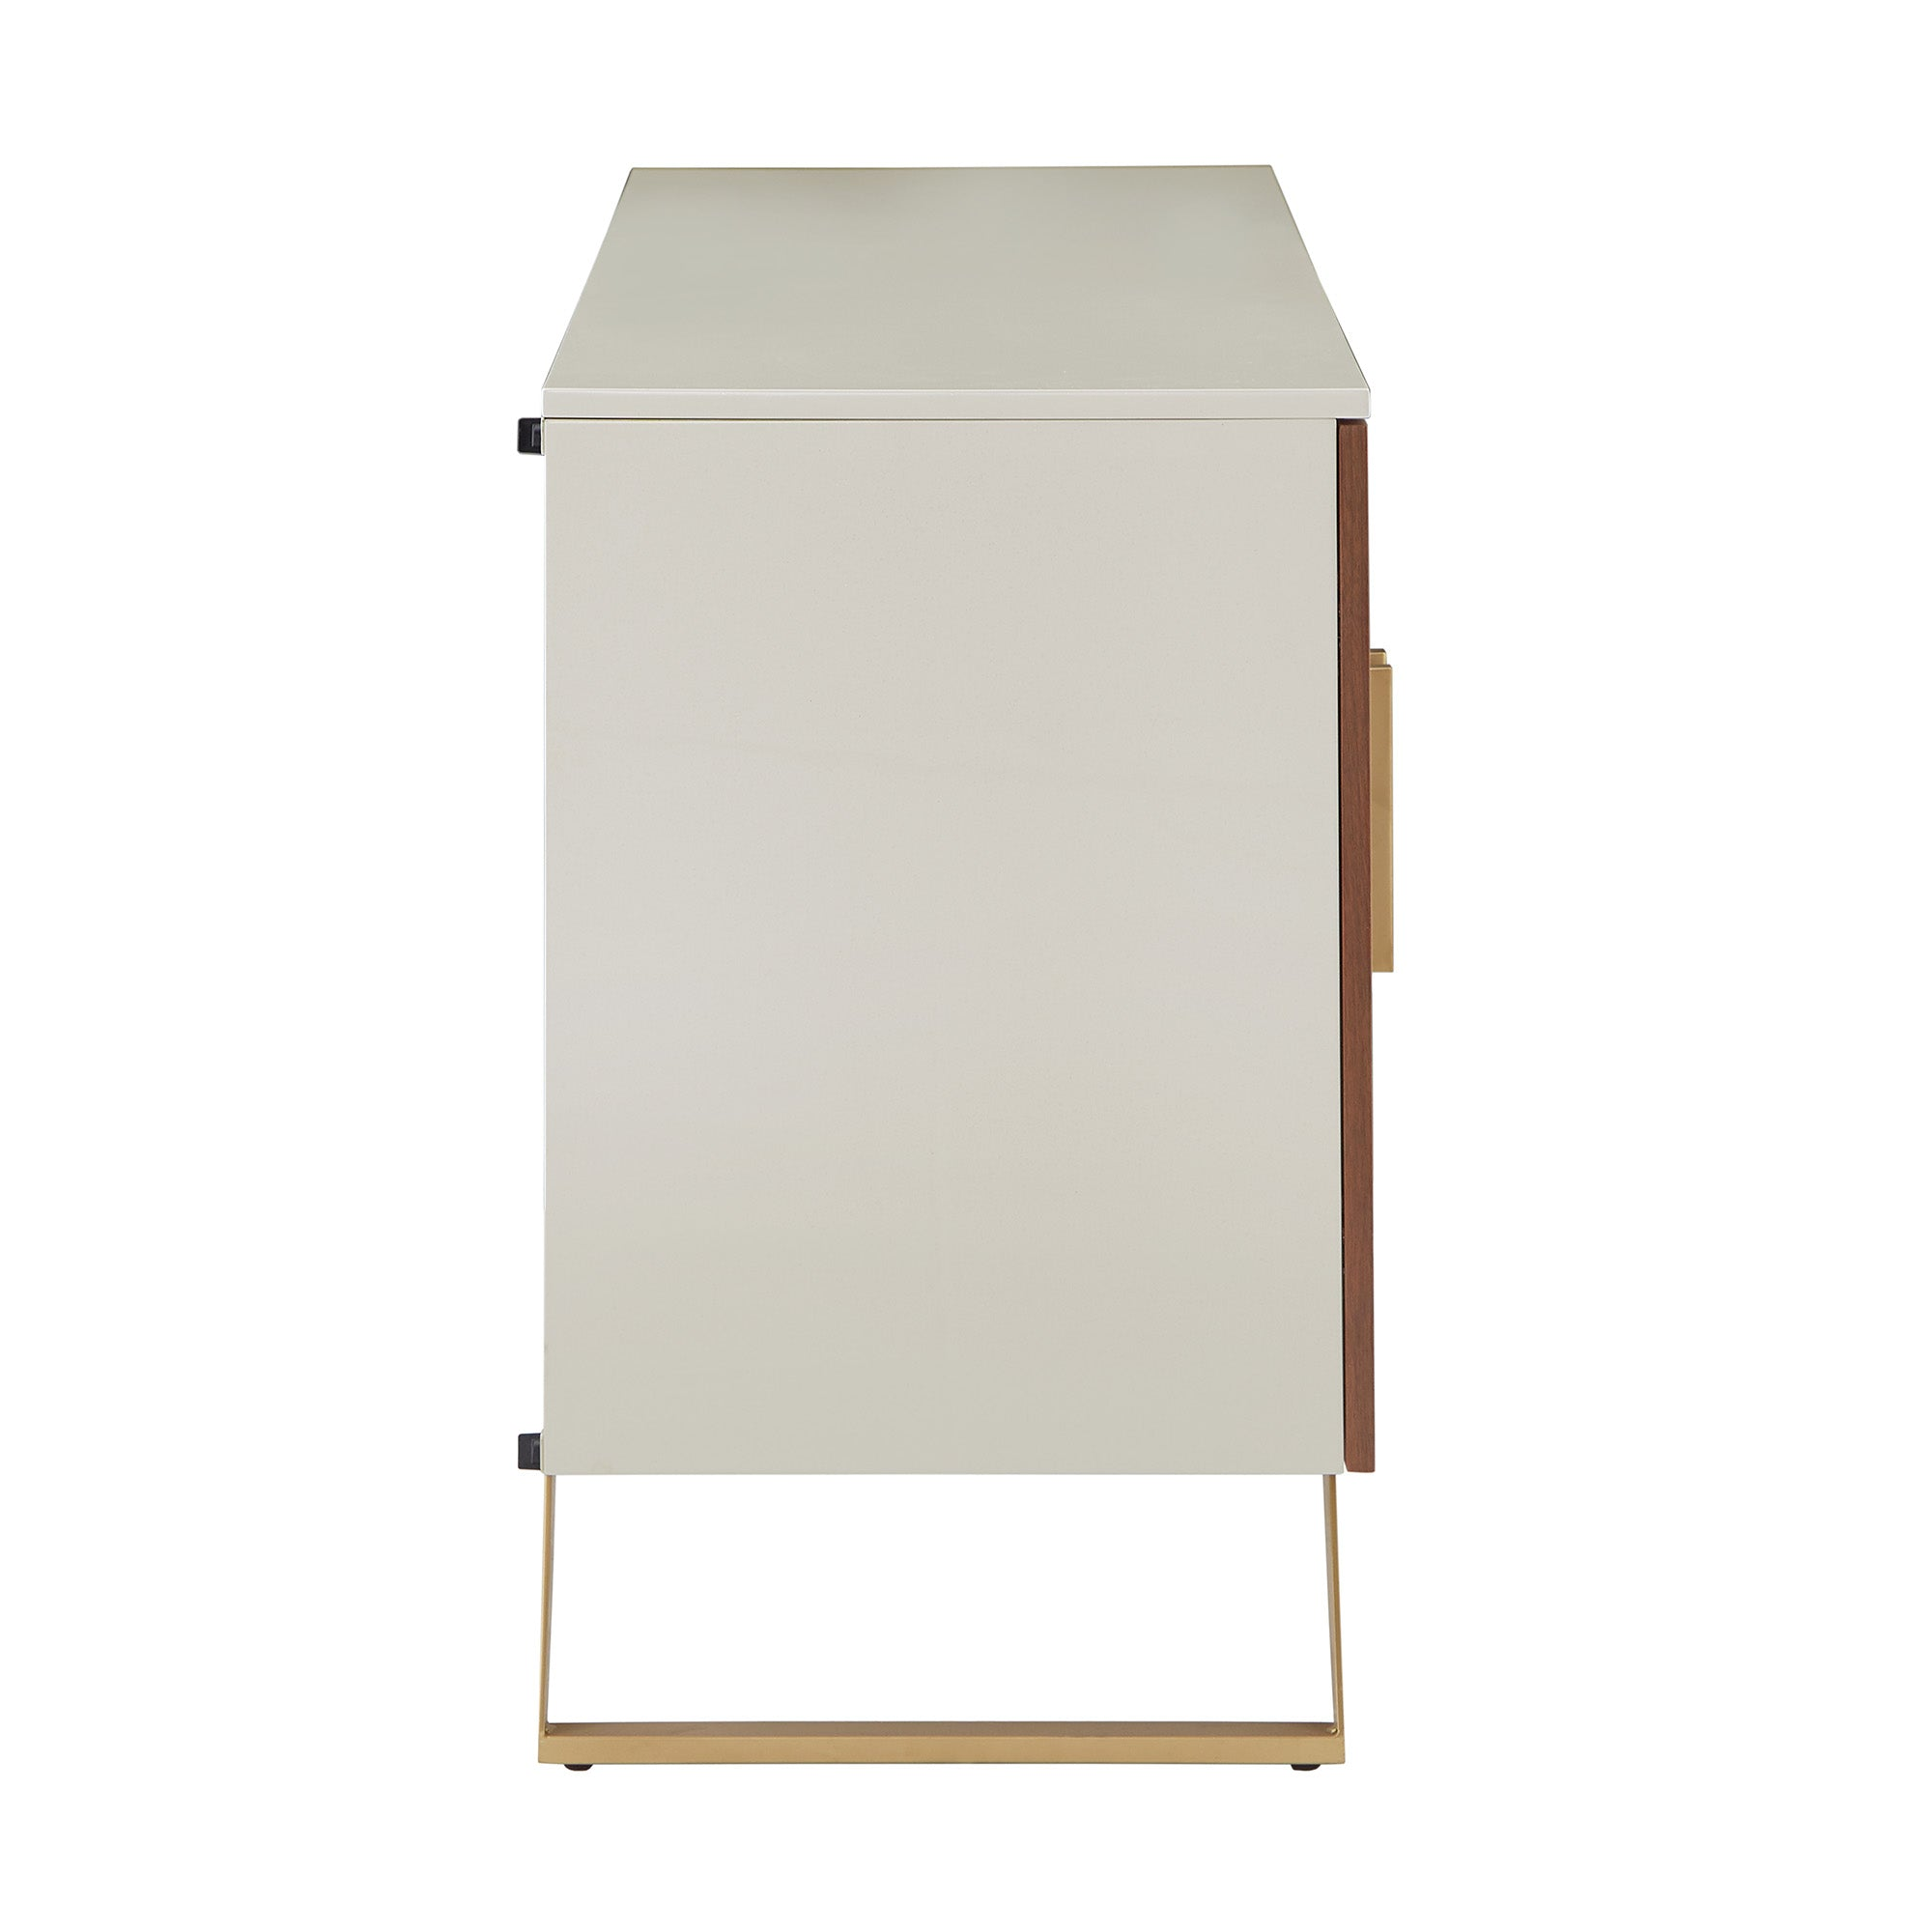 Two-Tone High Gloss White and Walnut Finish 3-Door TV Stand